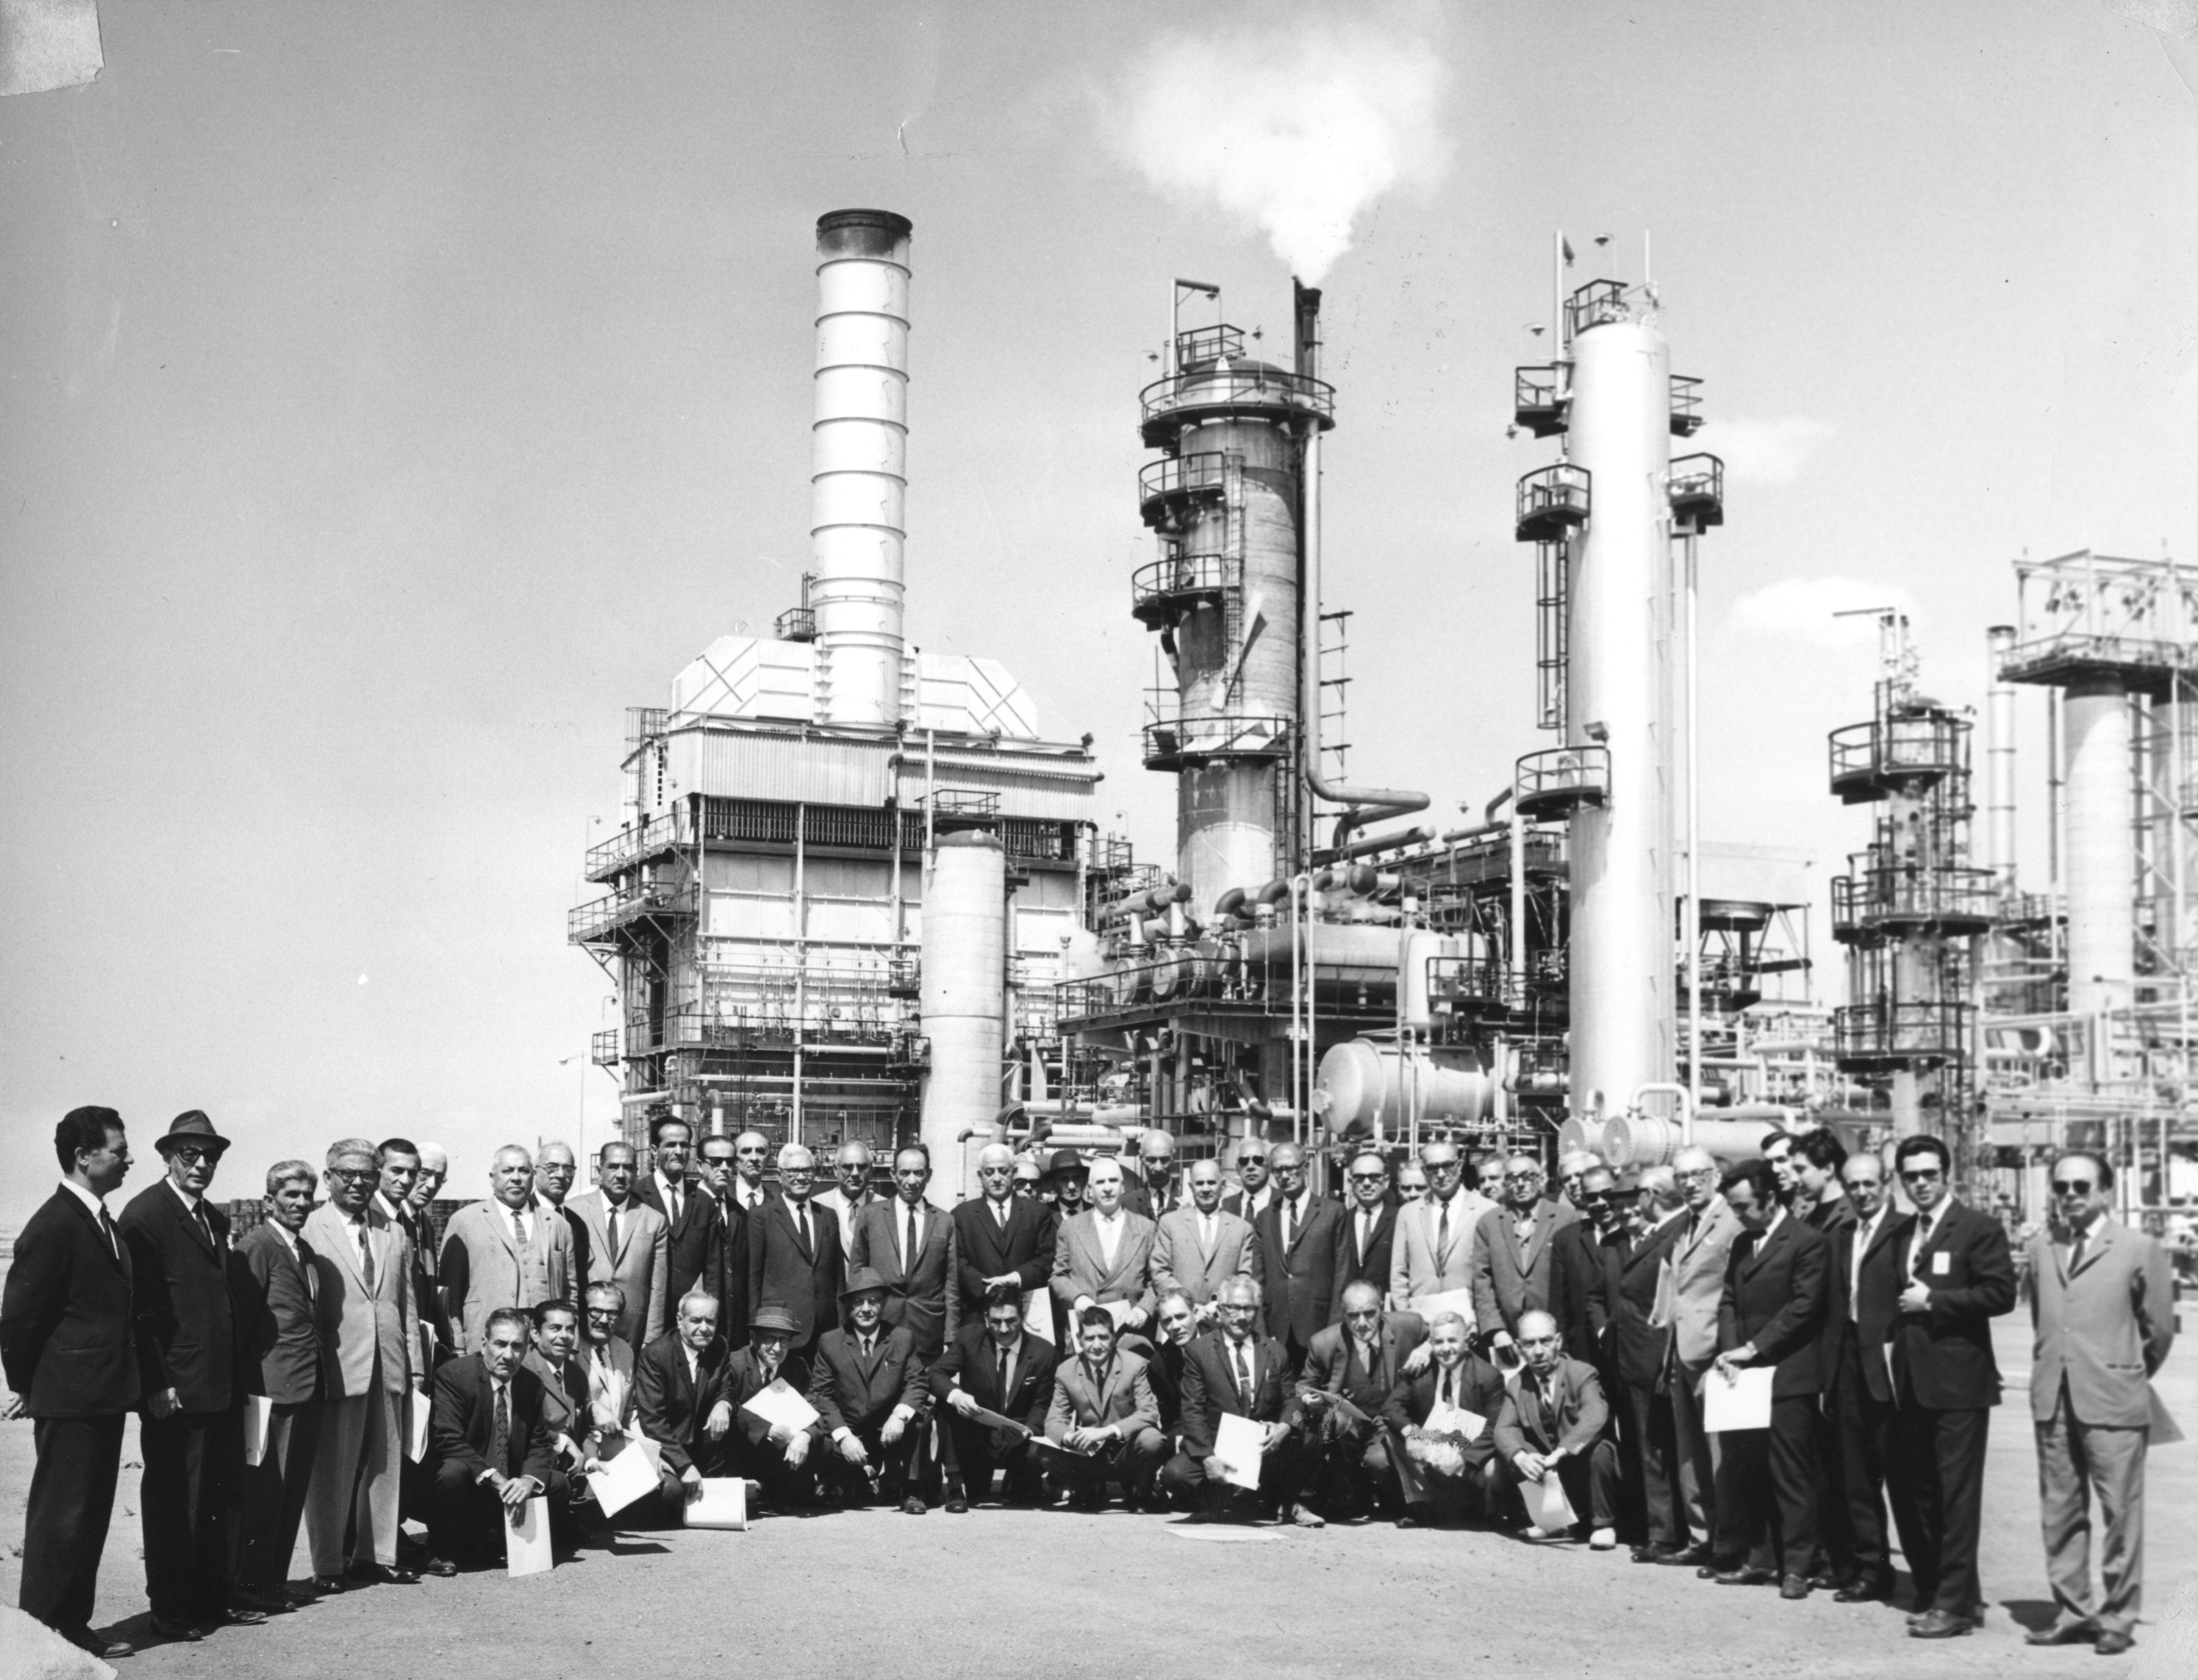 IISH Research | Iran Oil Industry | By Nevit Dilmen (talk) - Own work Family album, Public Domain, https://commons.wikimedia.org/w/index.php?curid=26133553